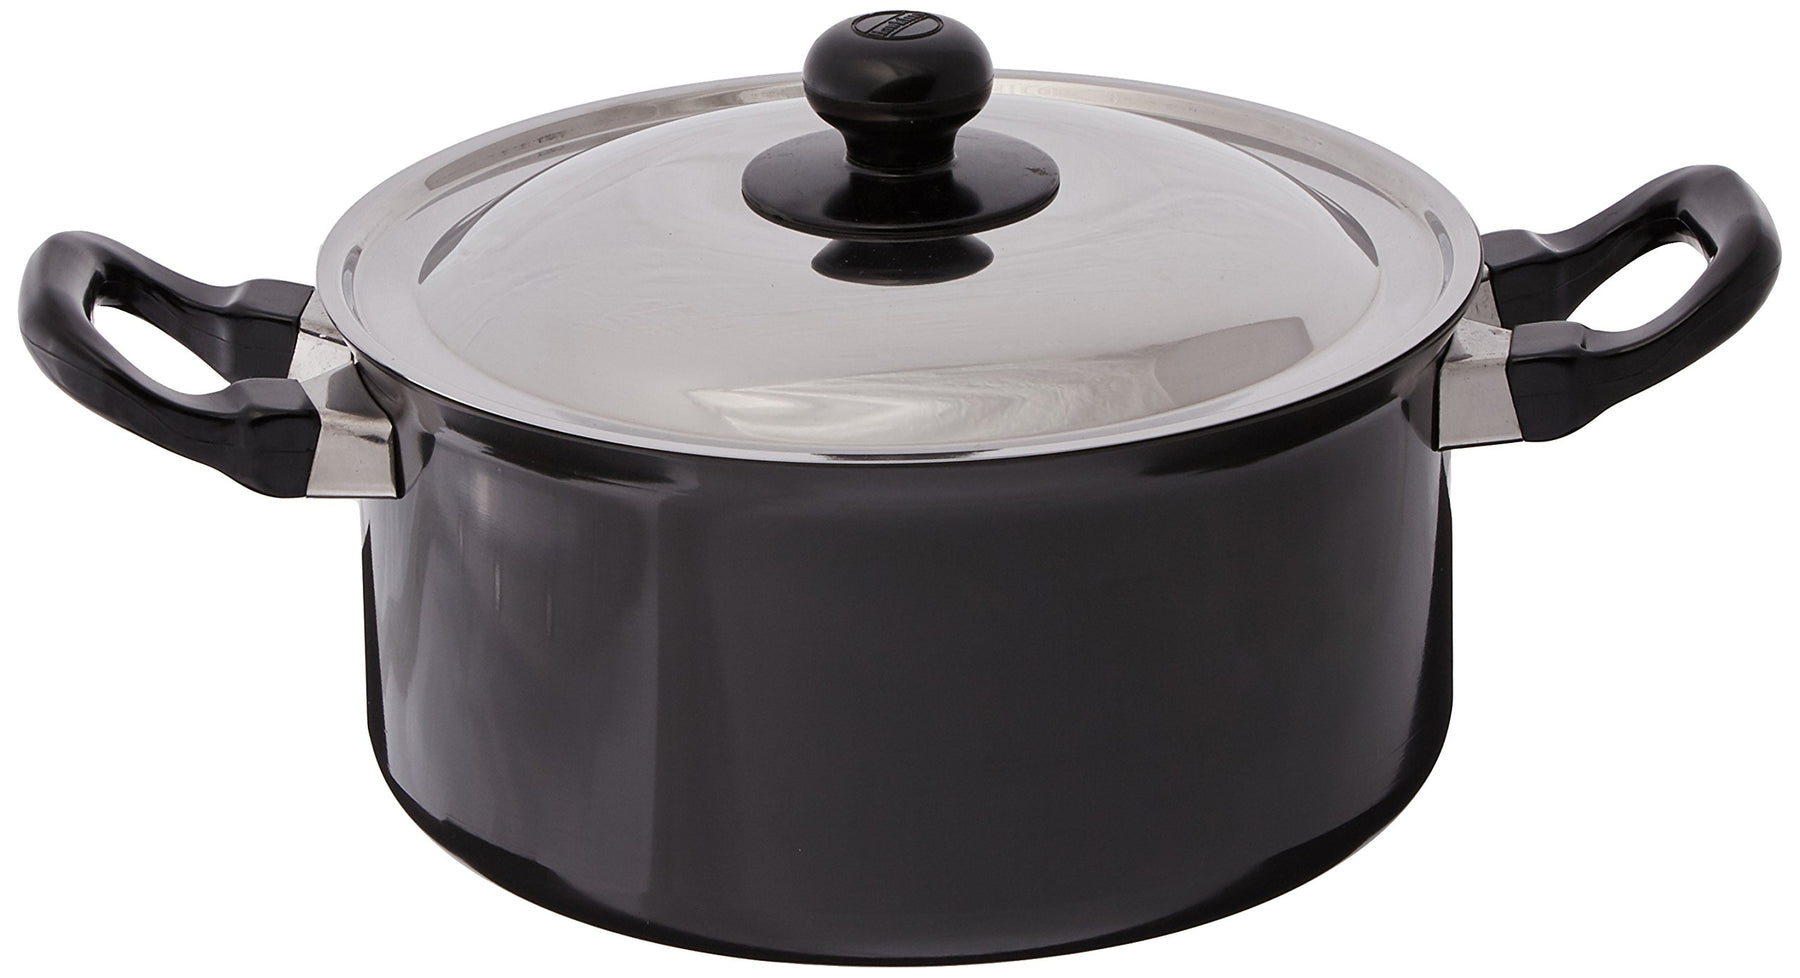 Futura Induction Future Nonstick Induction Base Stewpot with Steel Lid, 3 L, Small, Black